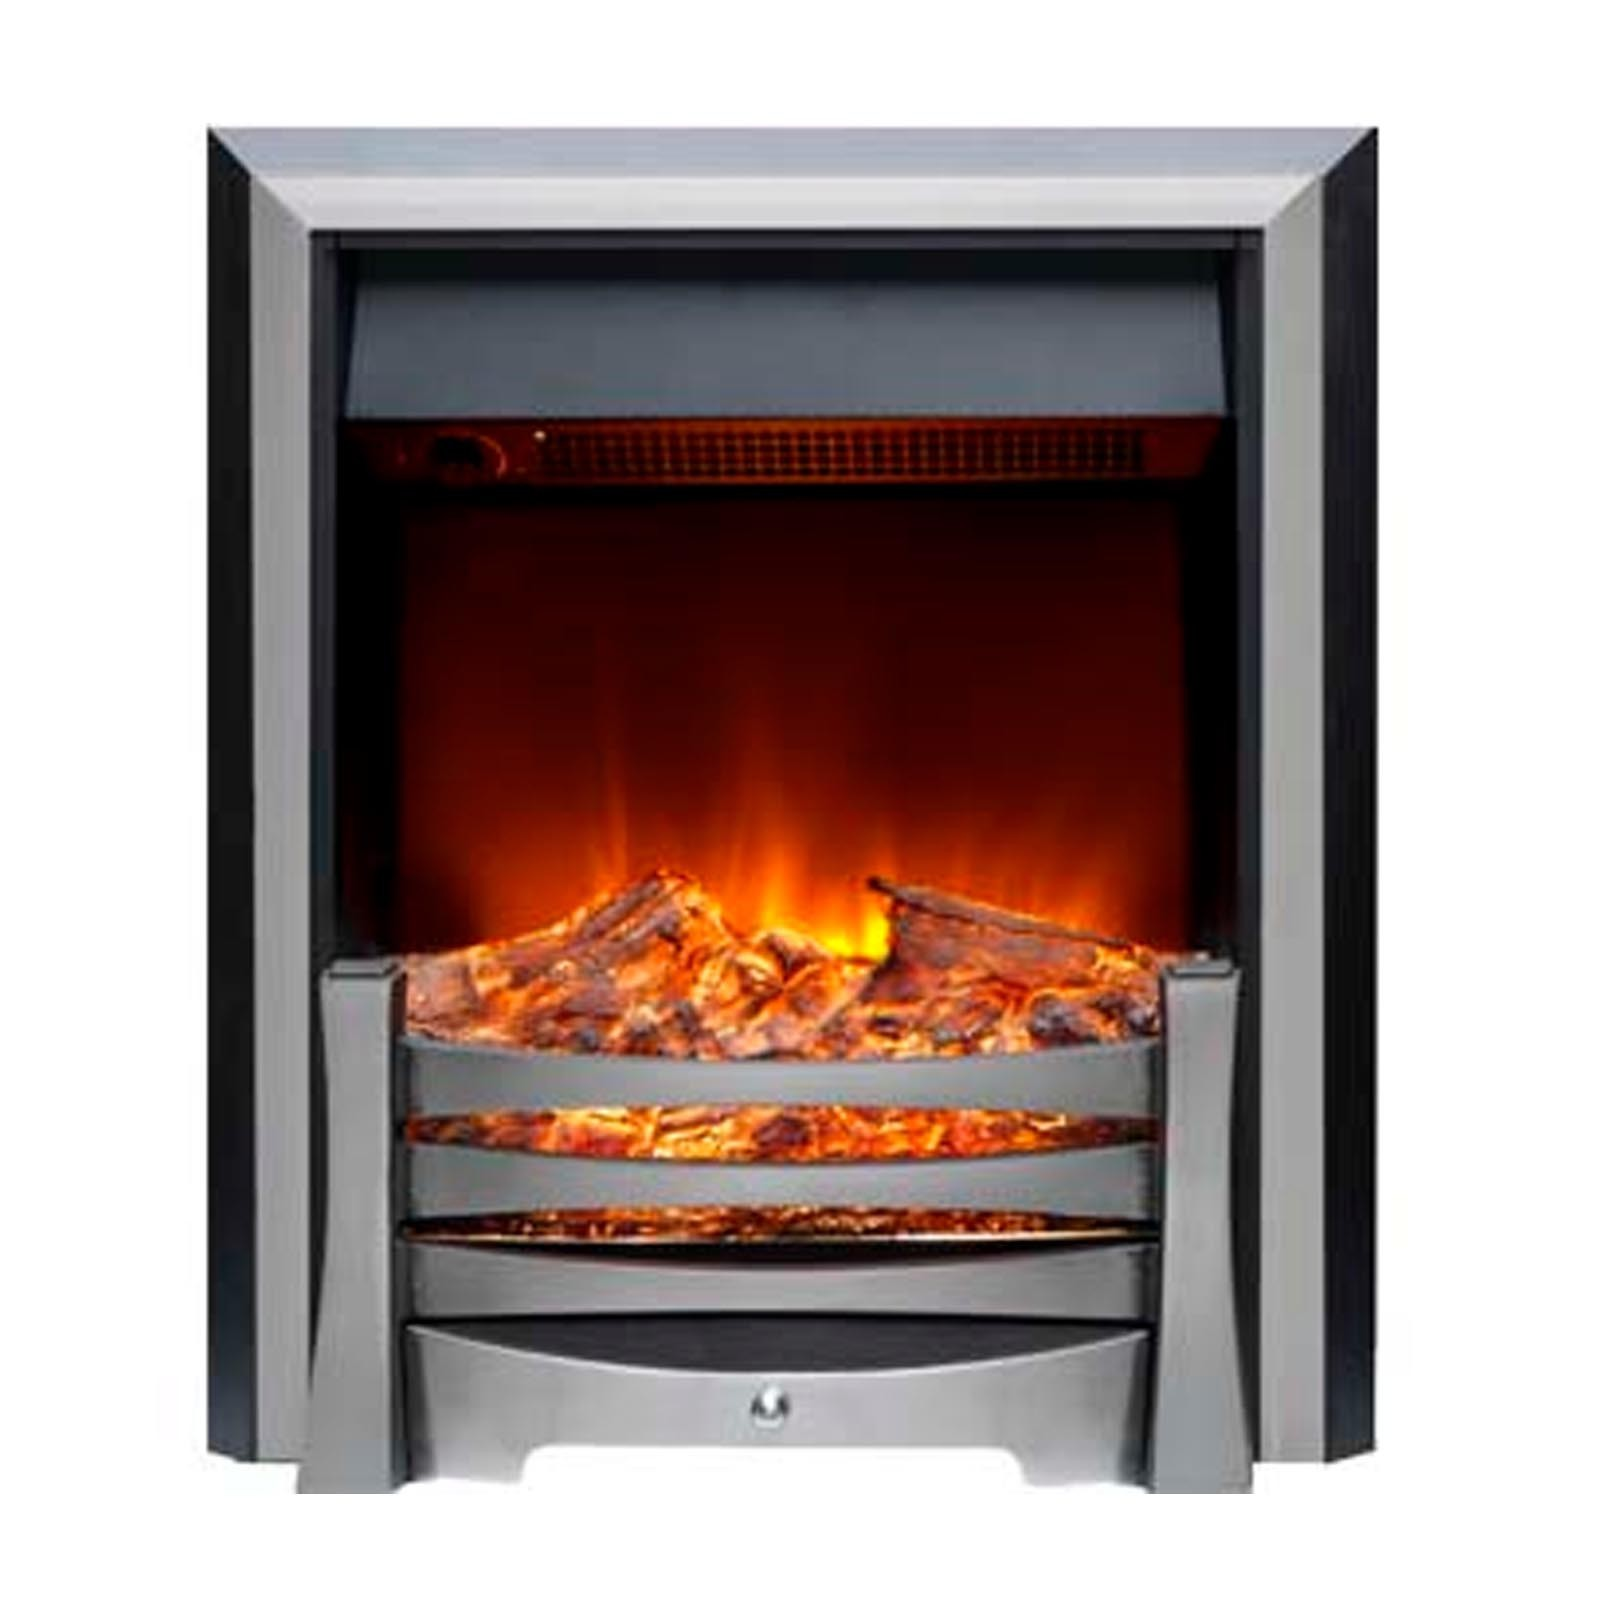 Top Customer Service Burley Egleton Stainless Steel Electric Fire Low Prices